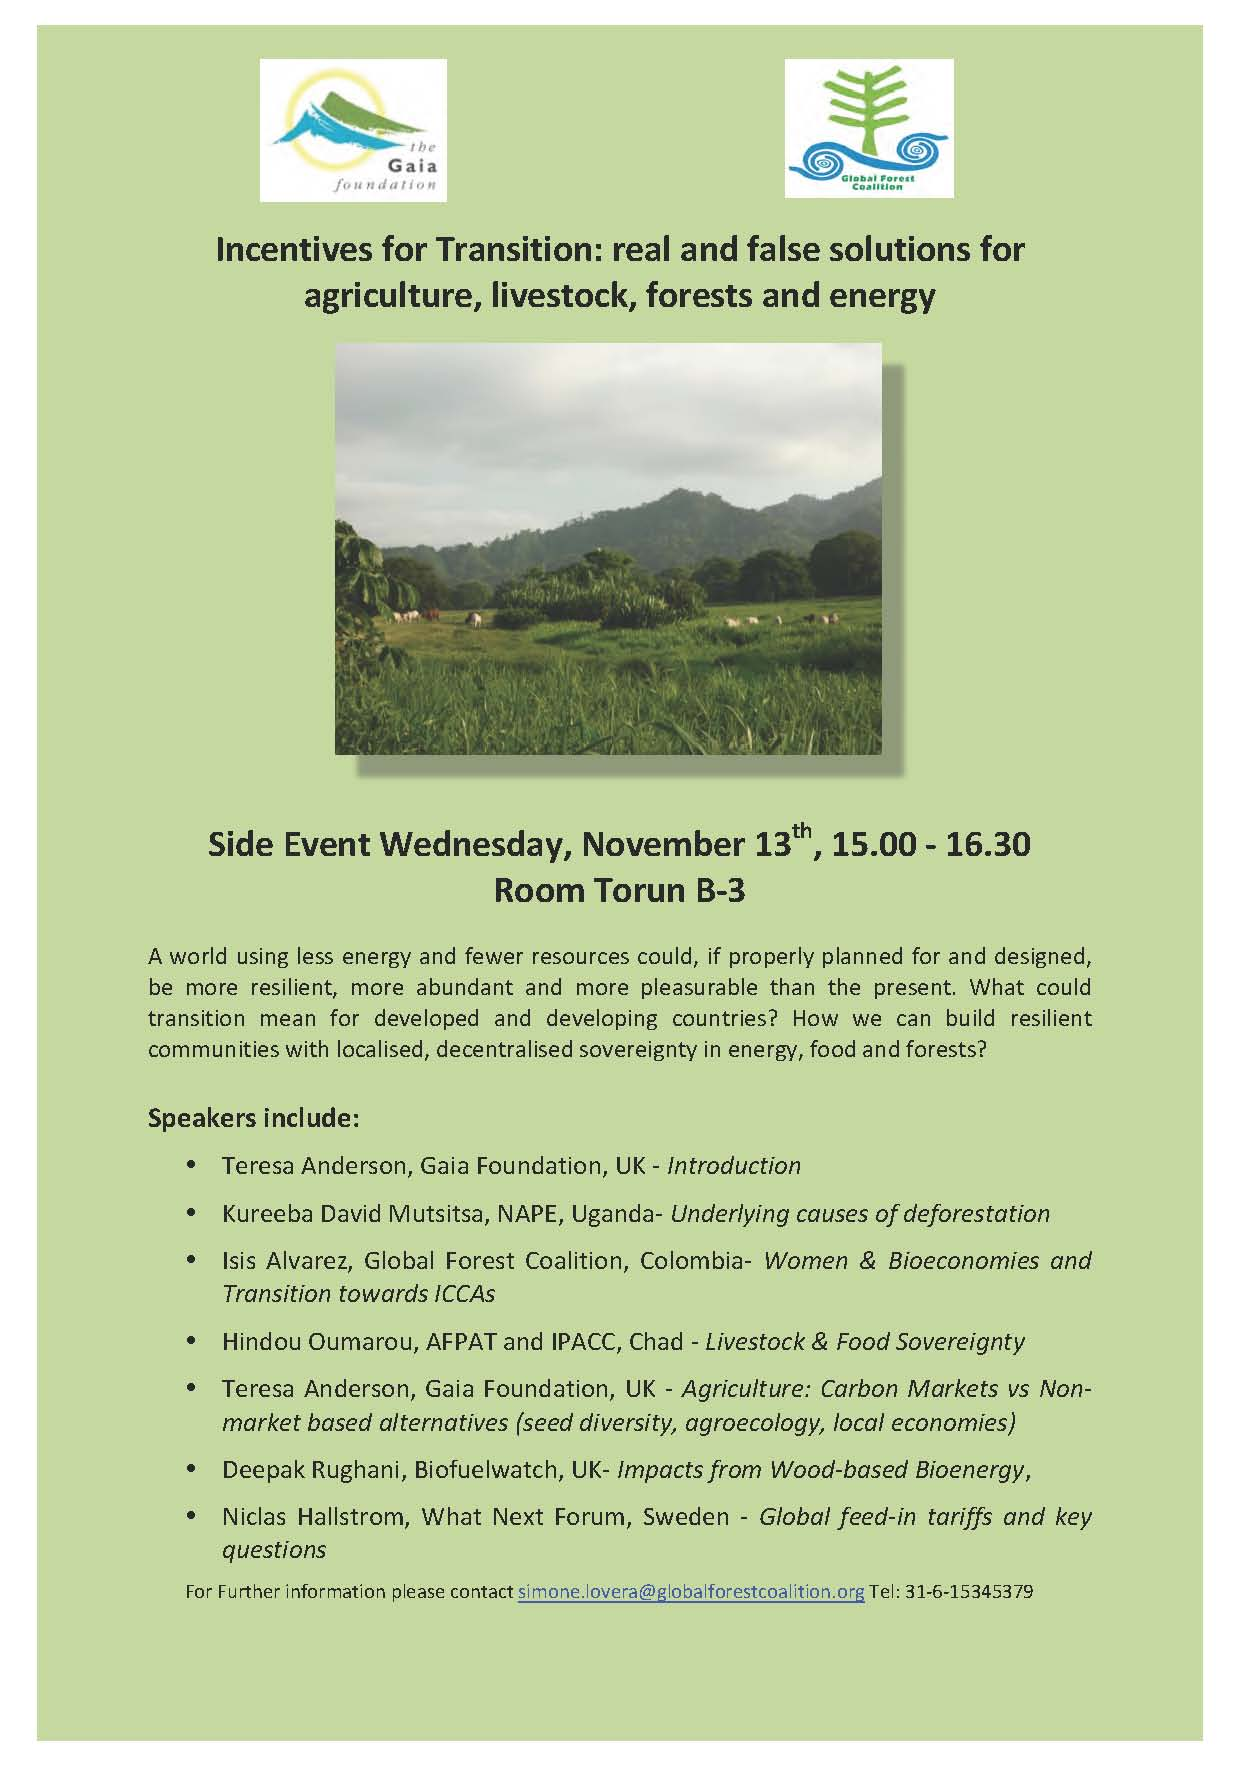 UNFCCC COP-19 - Side Event on Incentives for Transition: real and false solutions for agriculture, livestock, forests and energy